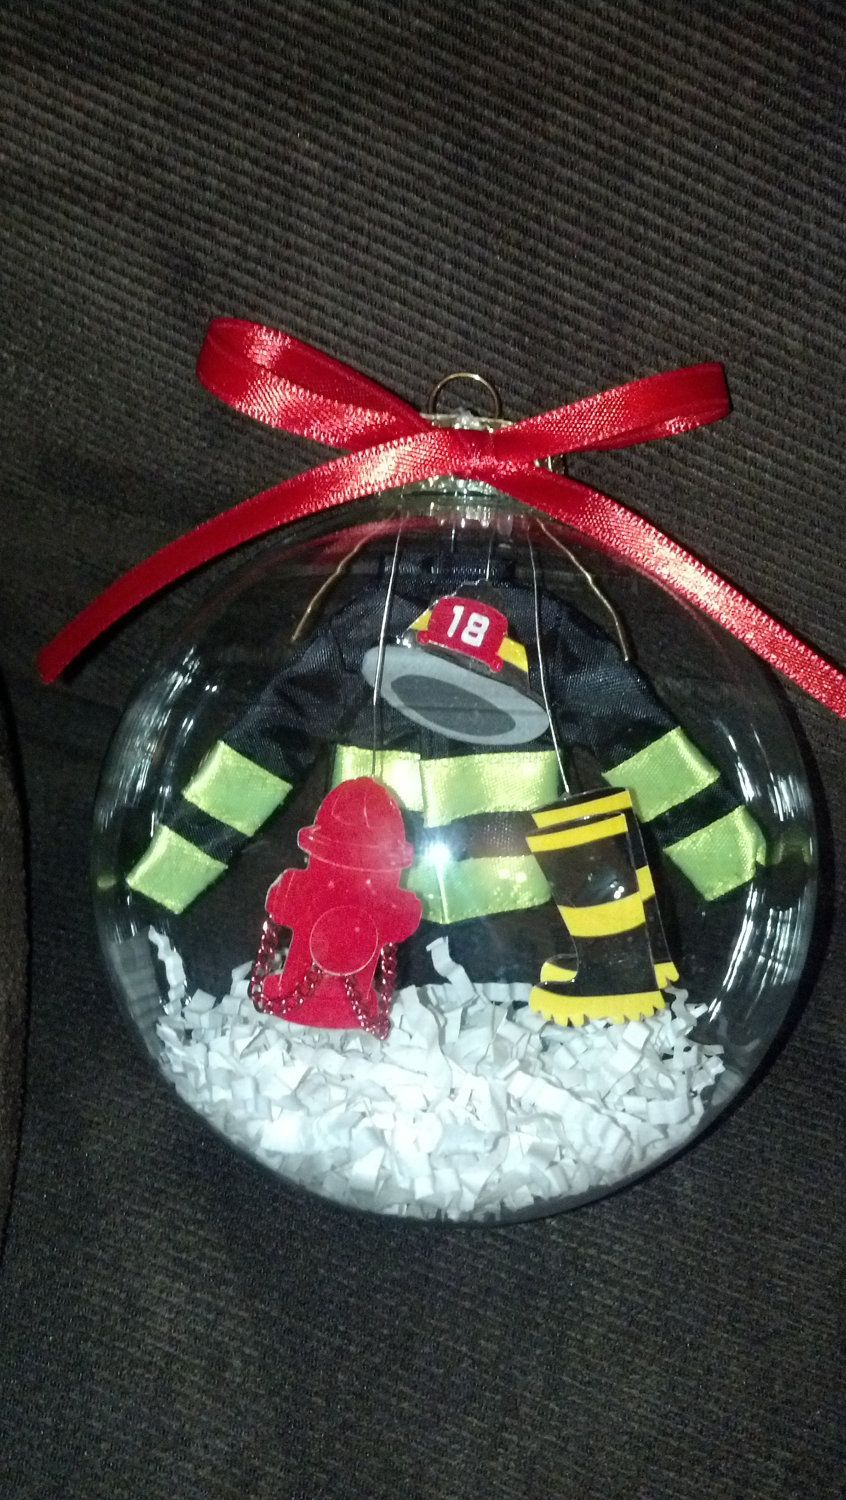 Pin by Michcor79 on My crafts Firefighter decor